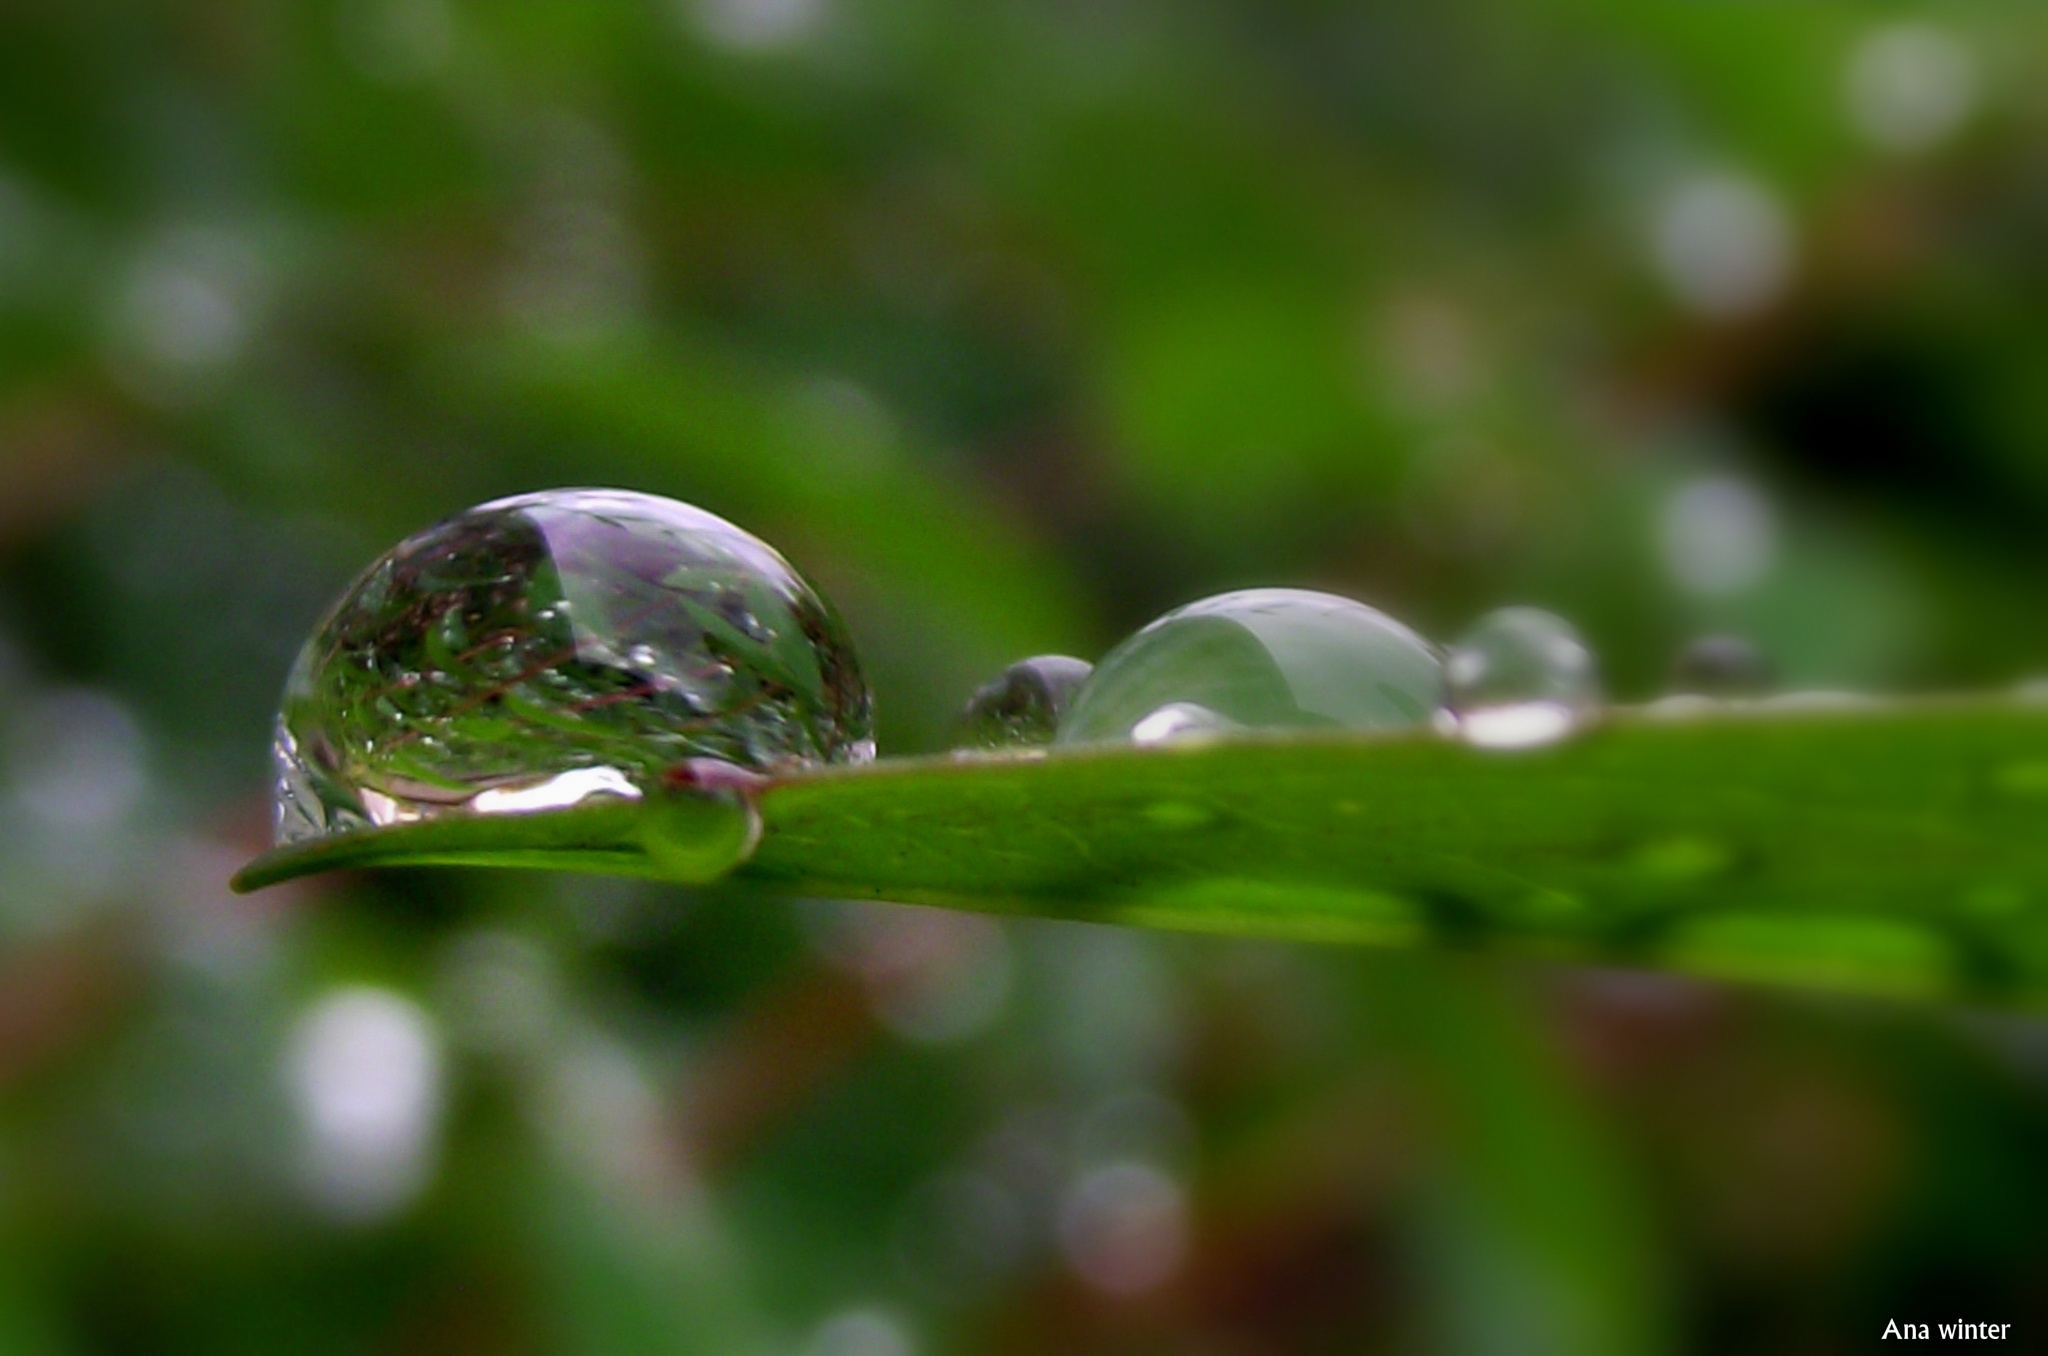 Confusion inside a droplet by Ana Winter